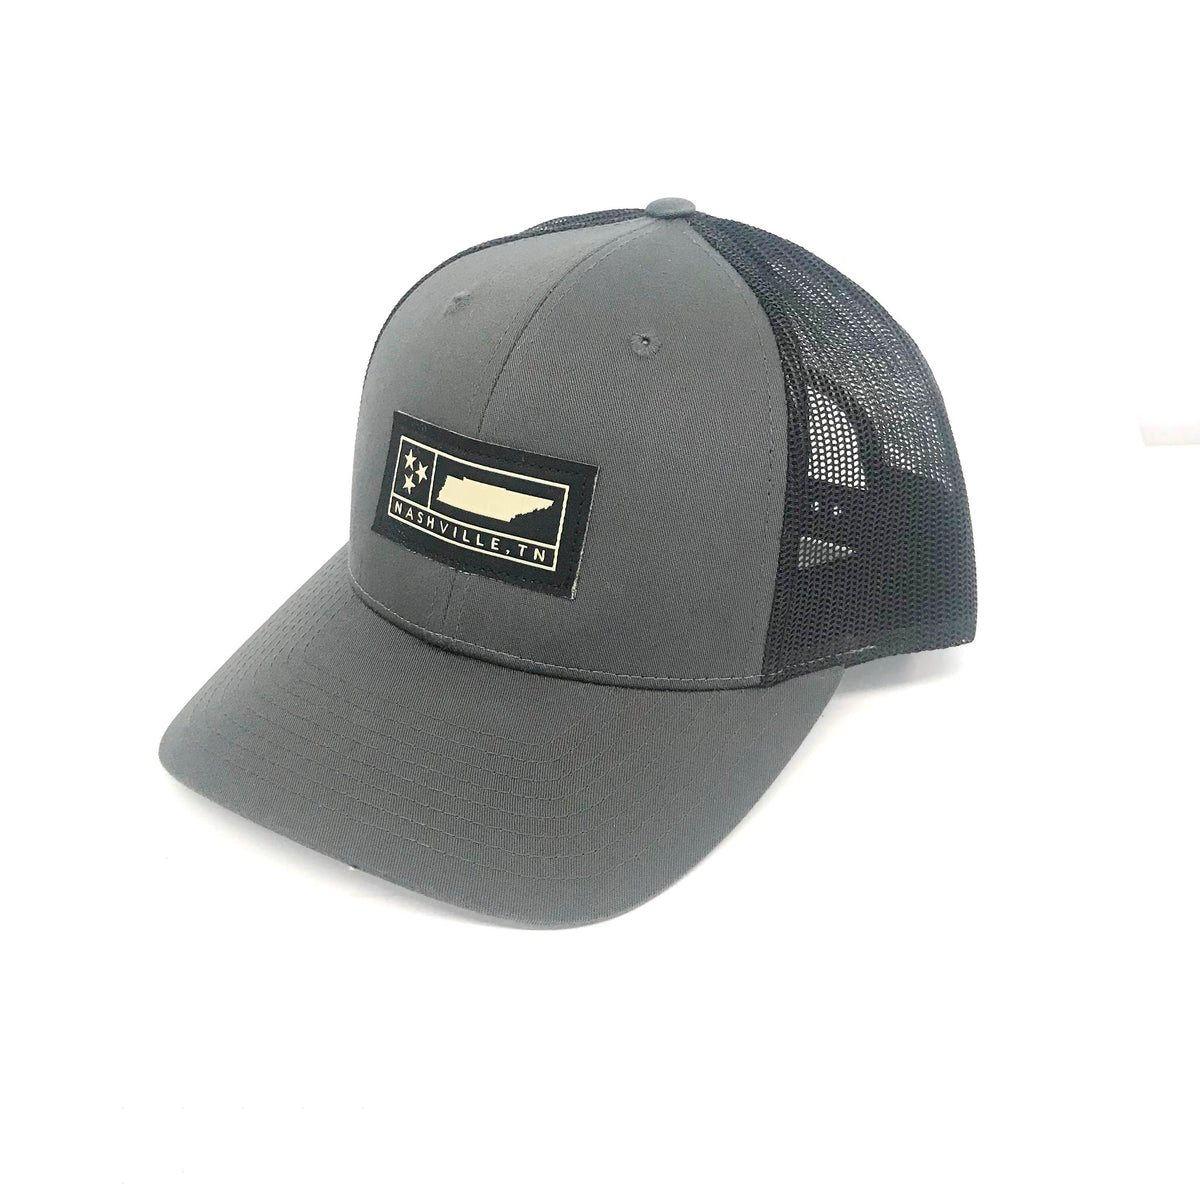 Tennessee Woven Black Label Hat